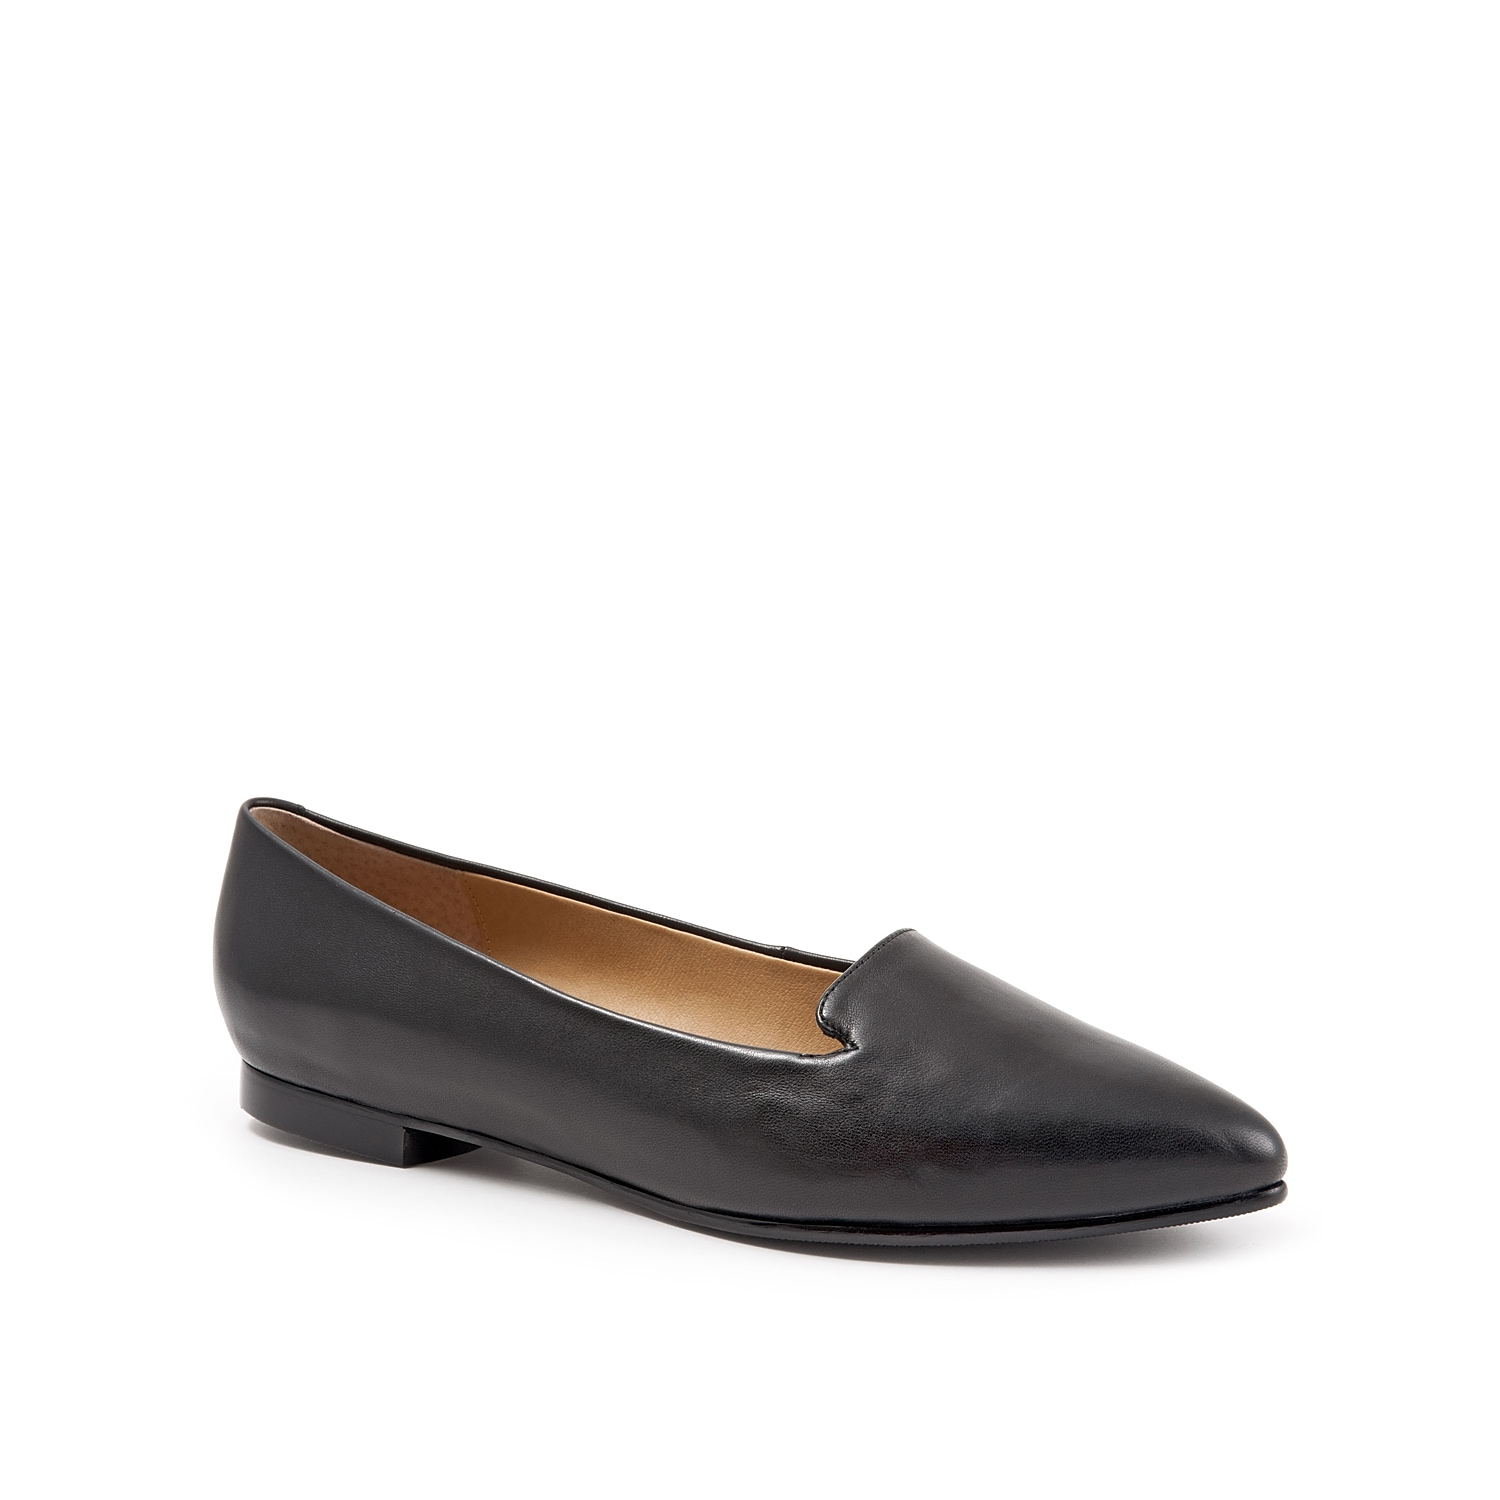 Get your feet pampered on the go by donning this Trotters Harlowe flat. This slip-on is enhanced with a cushioned footbed for excellent comfort and pointed silhouette for a classic appeal.